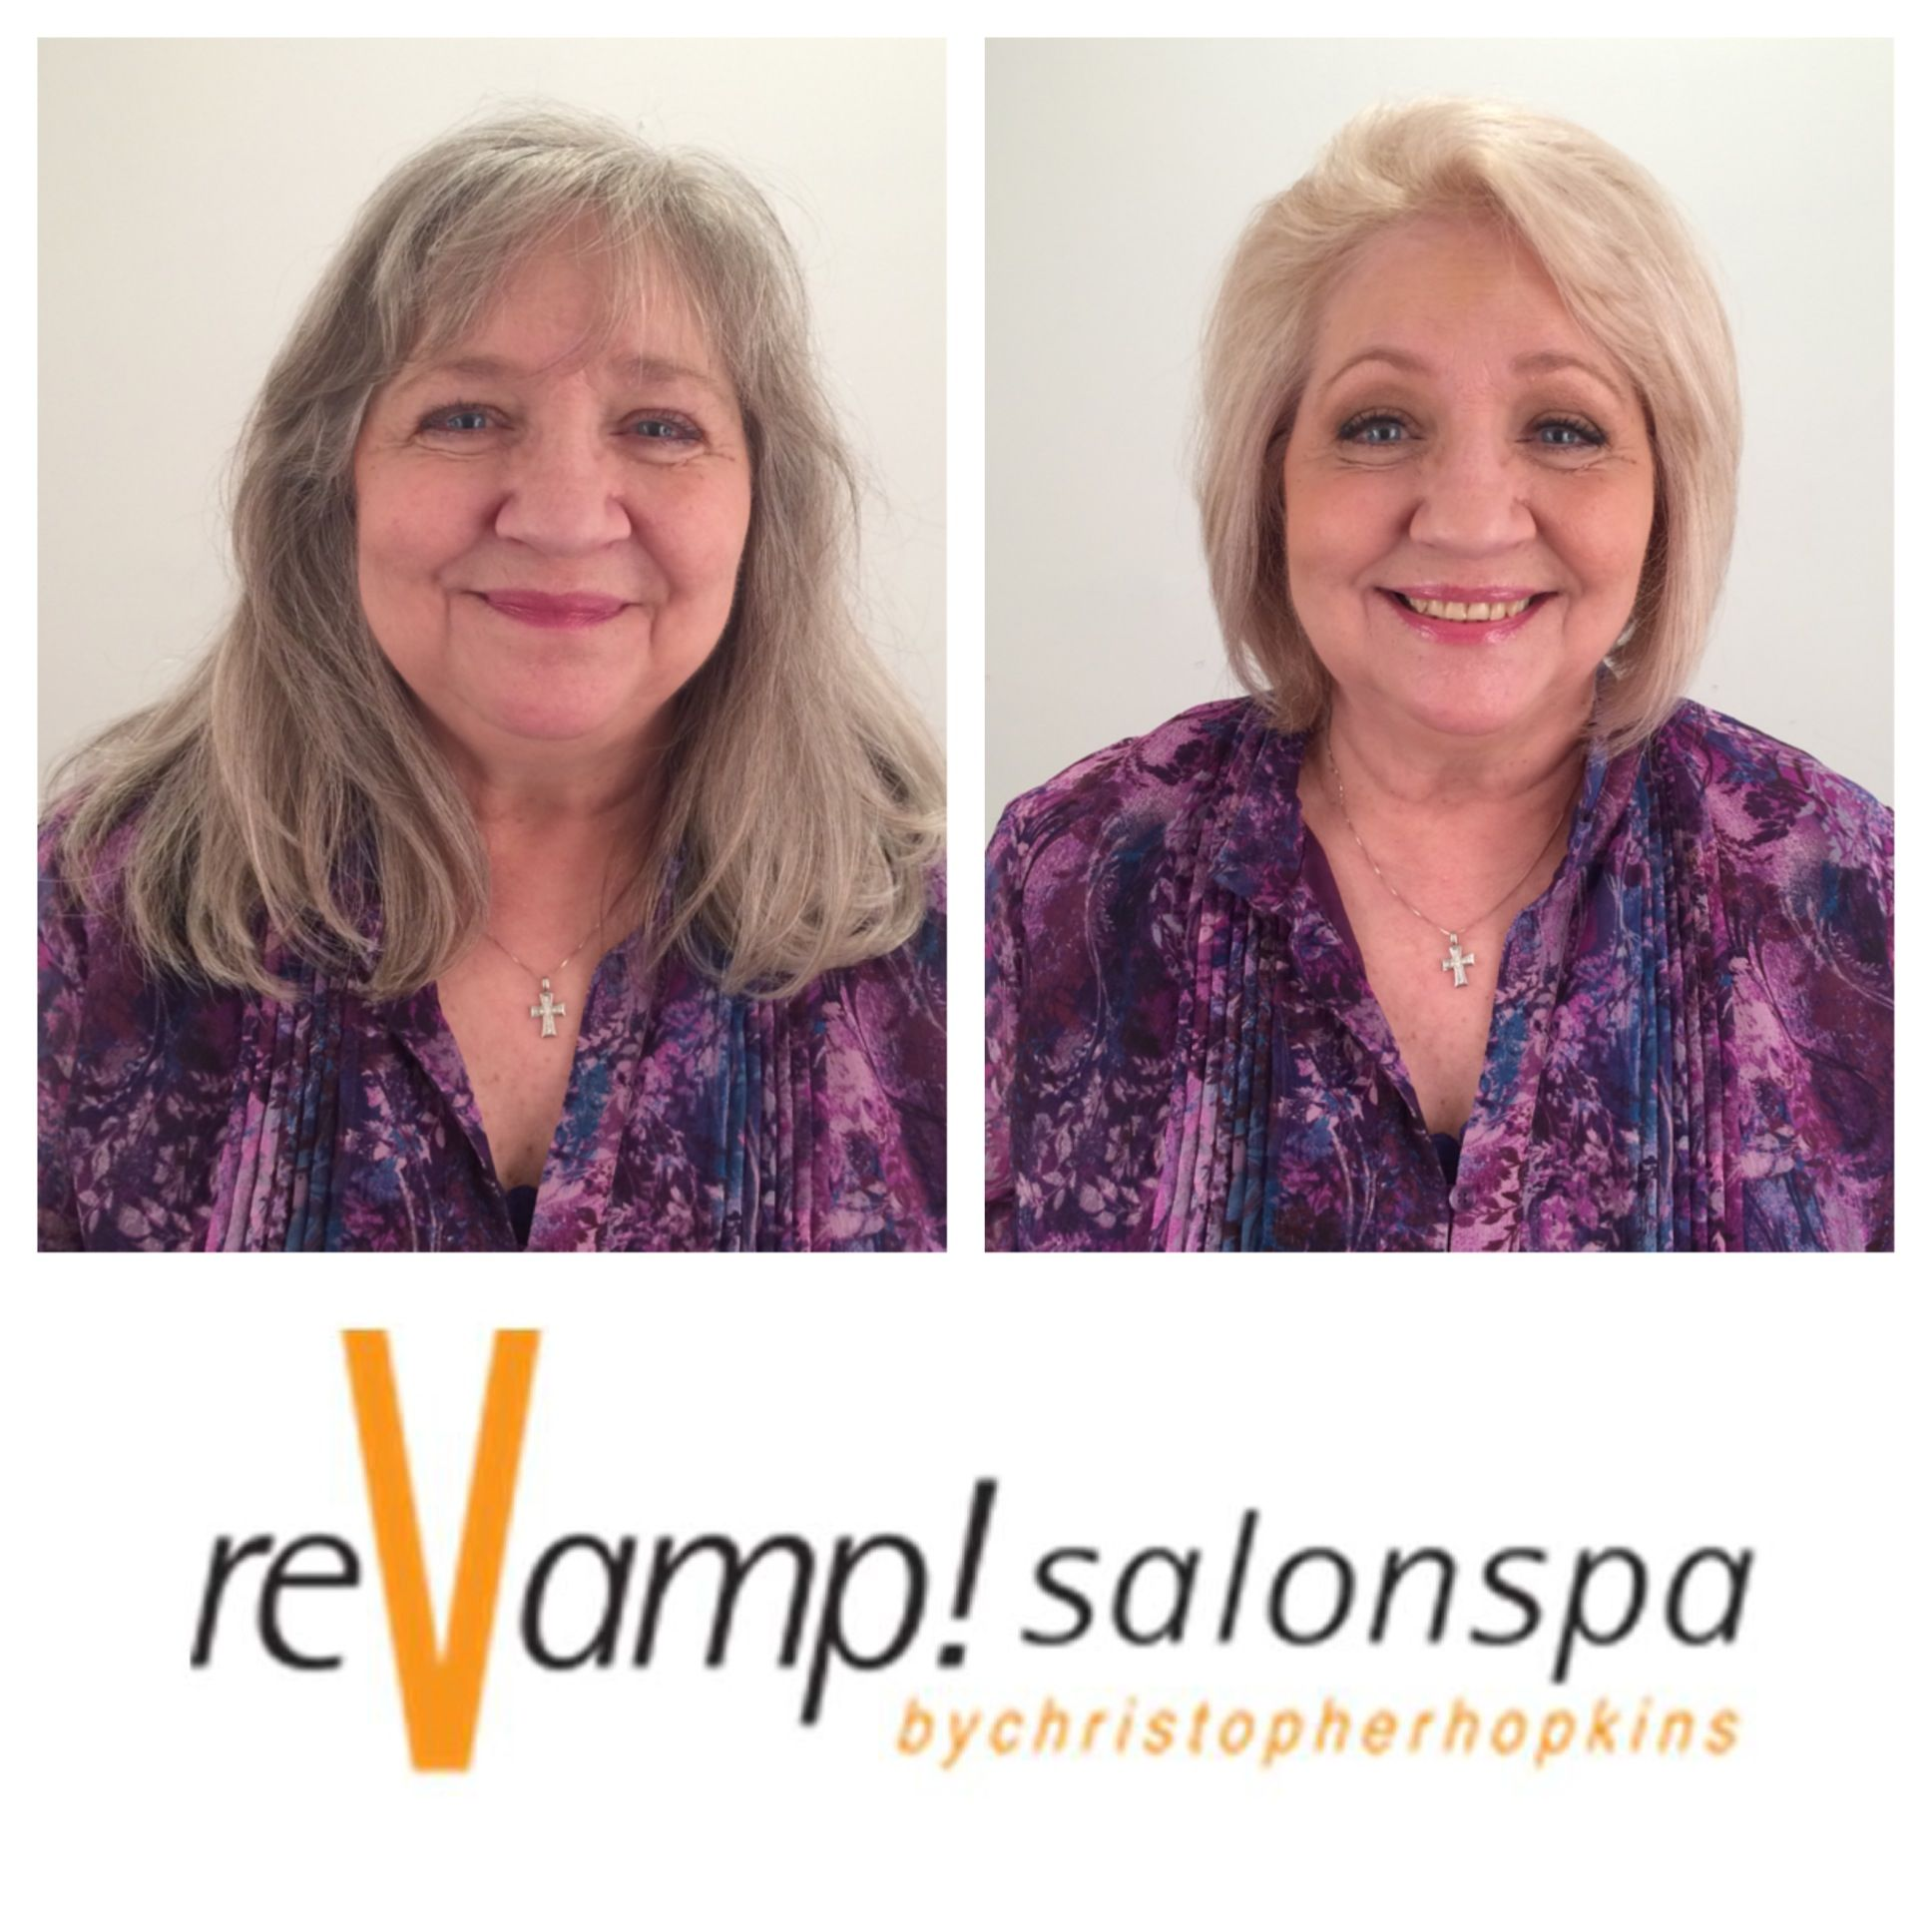 revamp! salonspa makeover before & after | my style in 2019